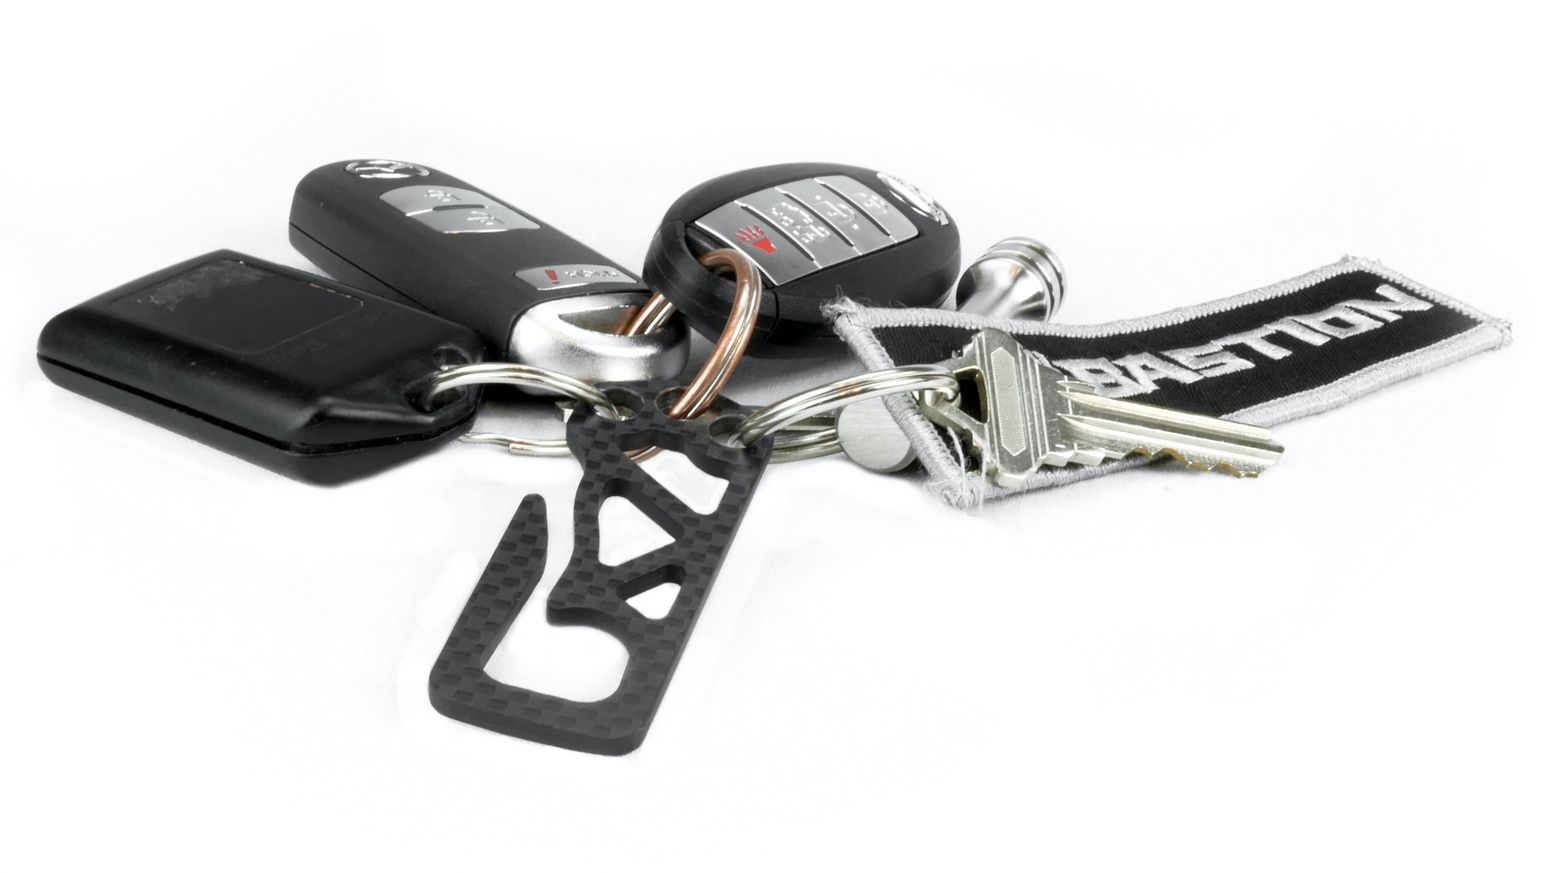 Stylish, ultra-light, and modern carbon fiber belt clip keeps your keys organized and within reach at all times. MUST HAVE for EDC GEAR